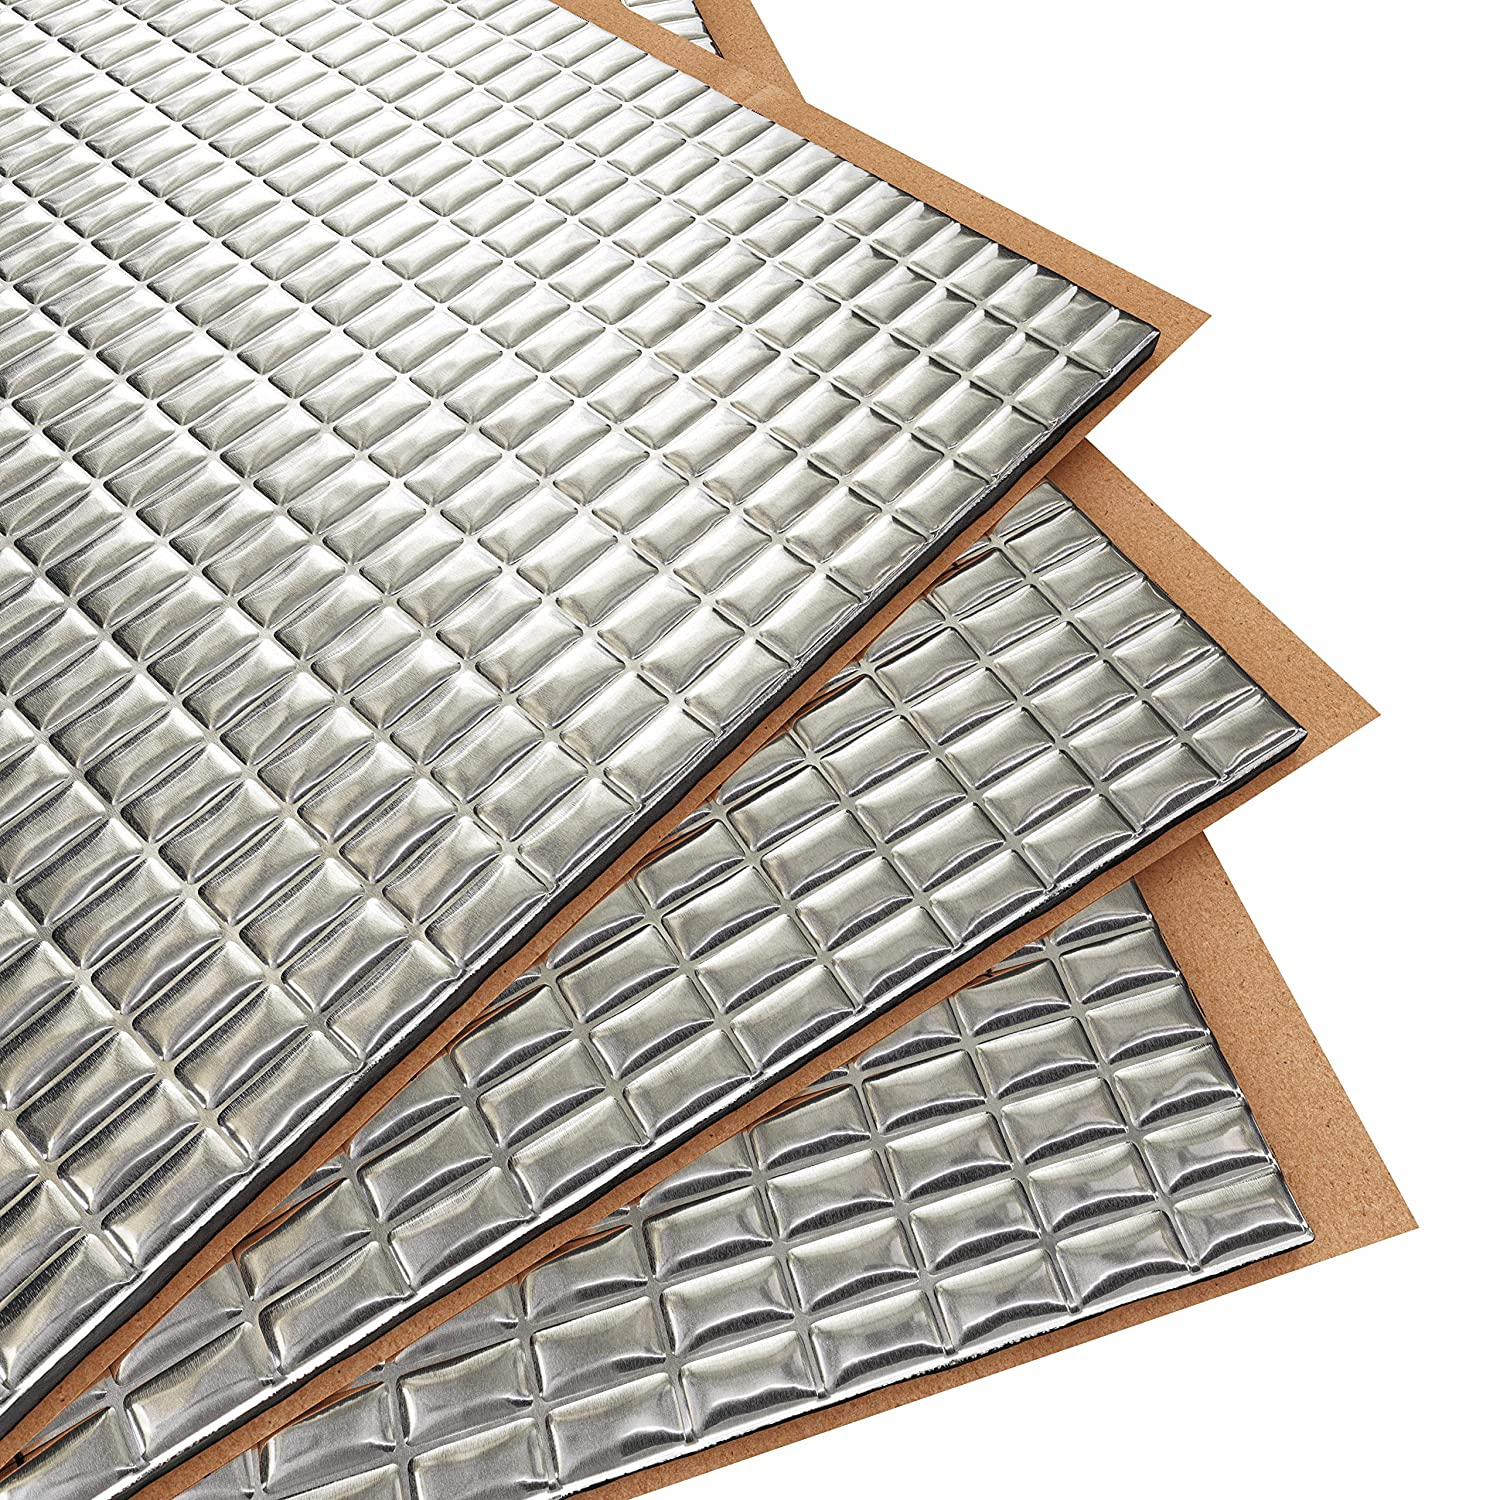 Siless 80 mil 36 sqft Sound Deadening mat | Sound Deadener Mat | Car Sound Dampening Material | Sound dampener | Sound deadening Material Sound Insulation | Car Sound deadening